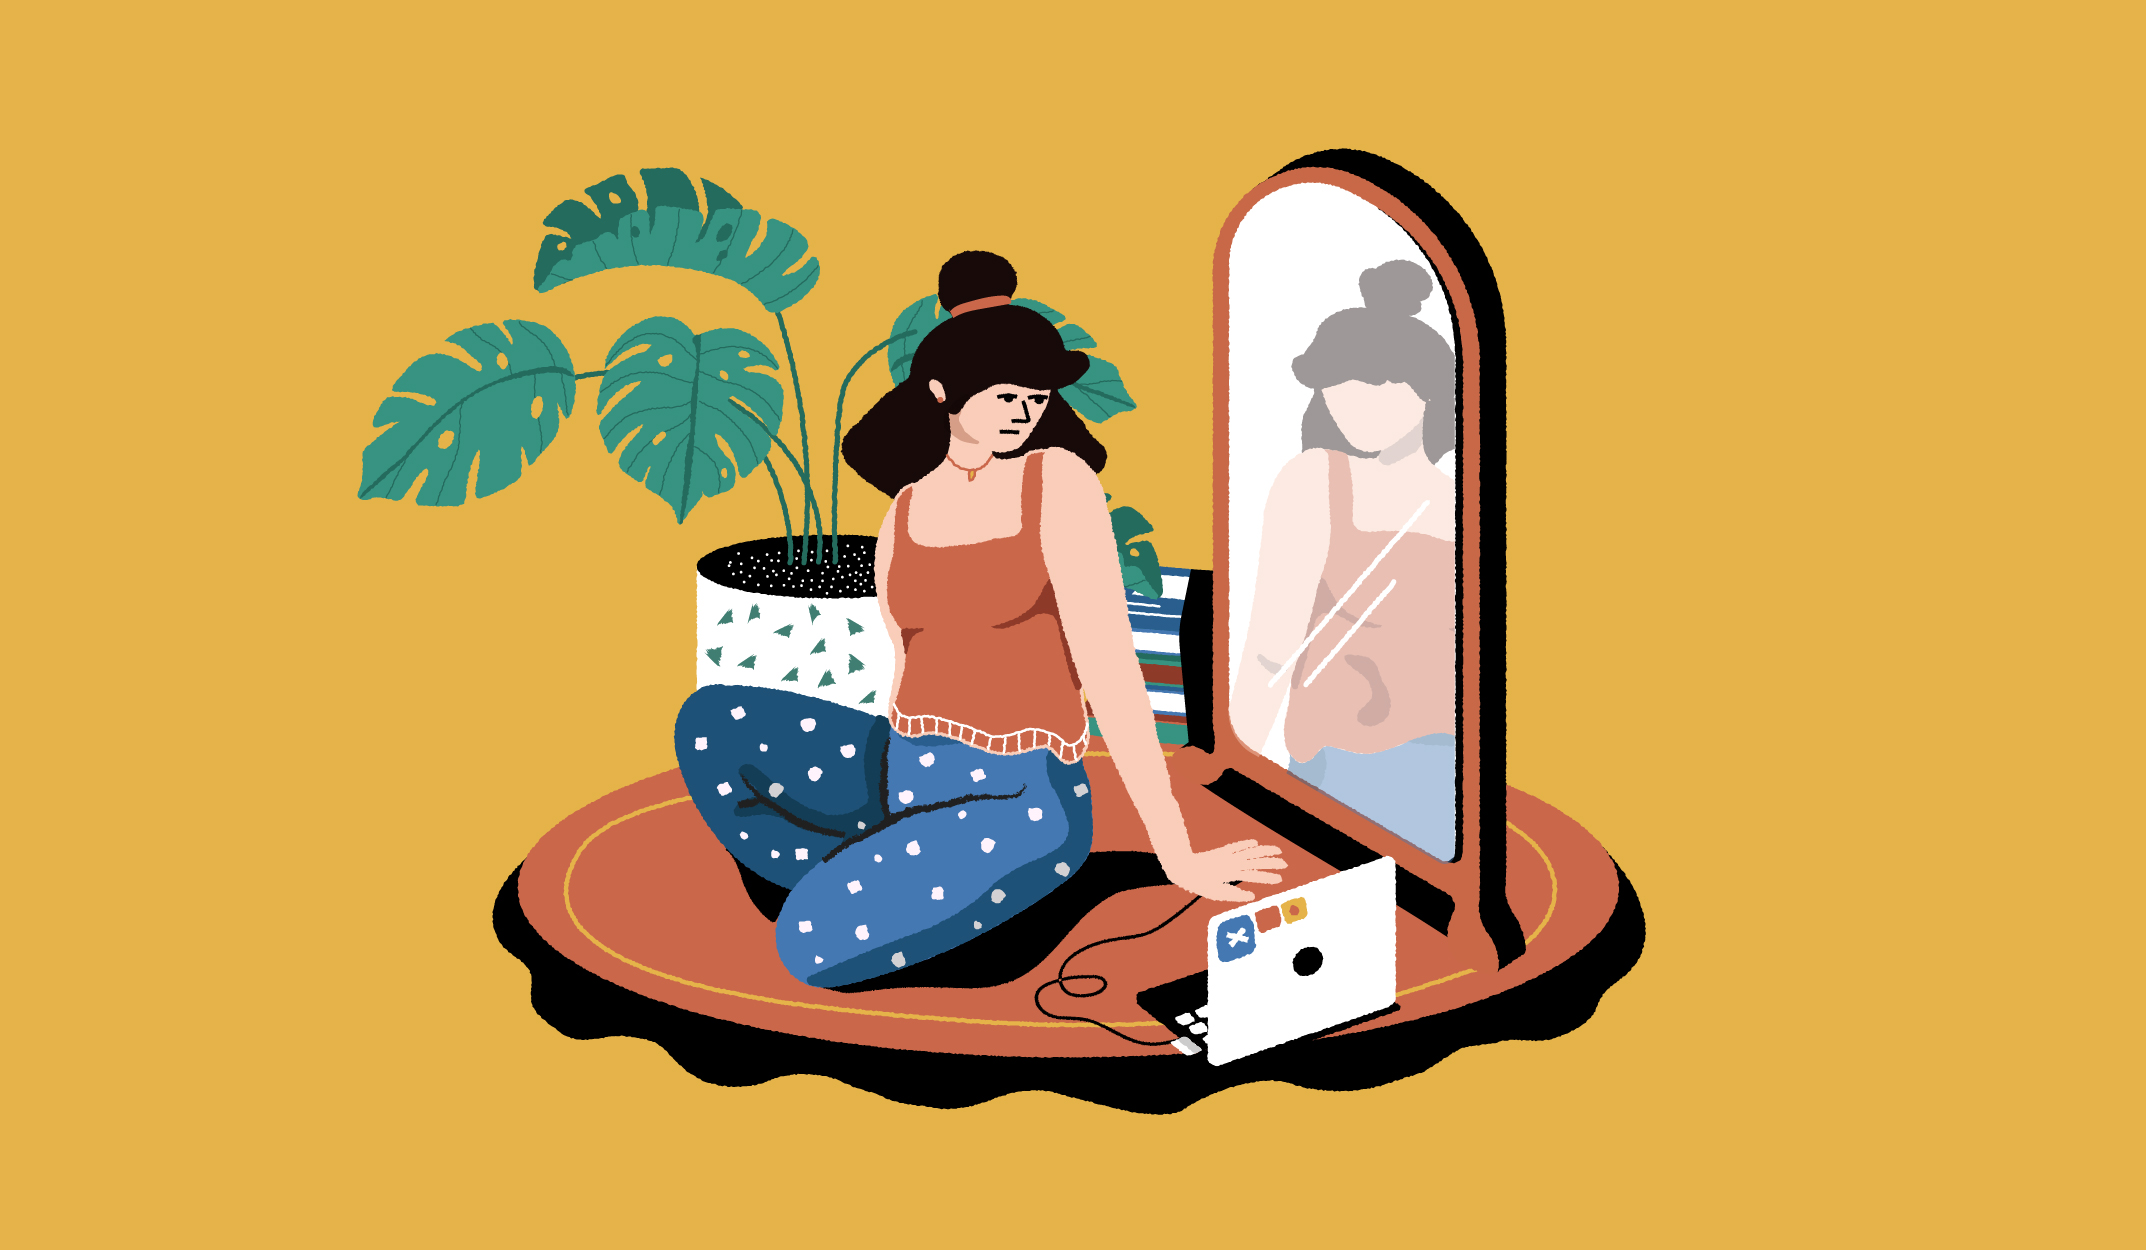 Illustration of woman sitting in front of a mirror with her laptop.